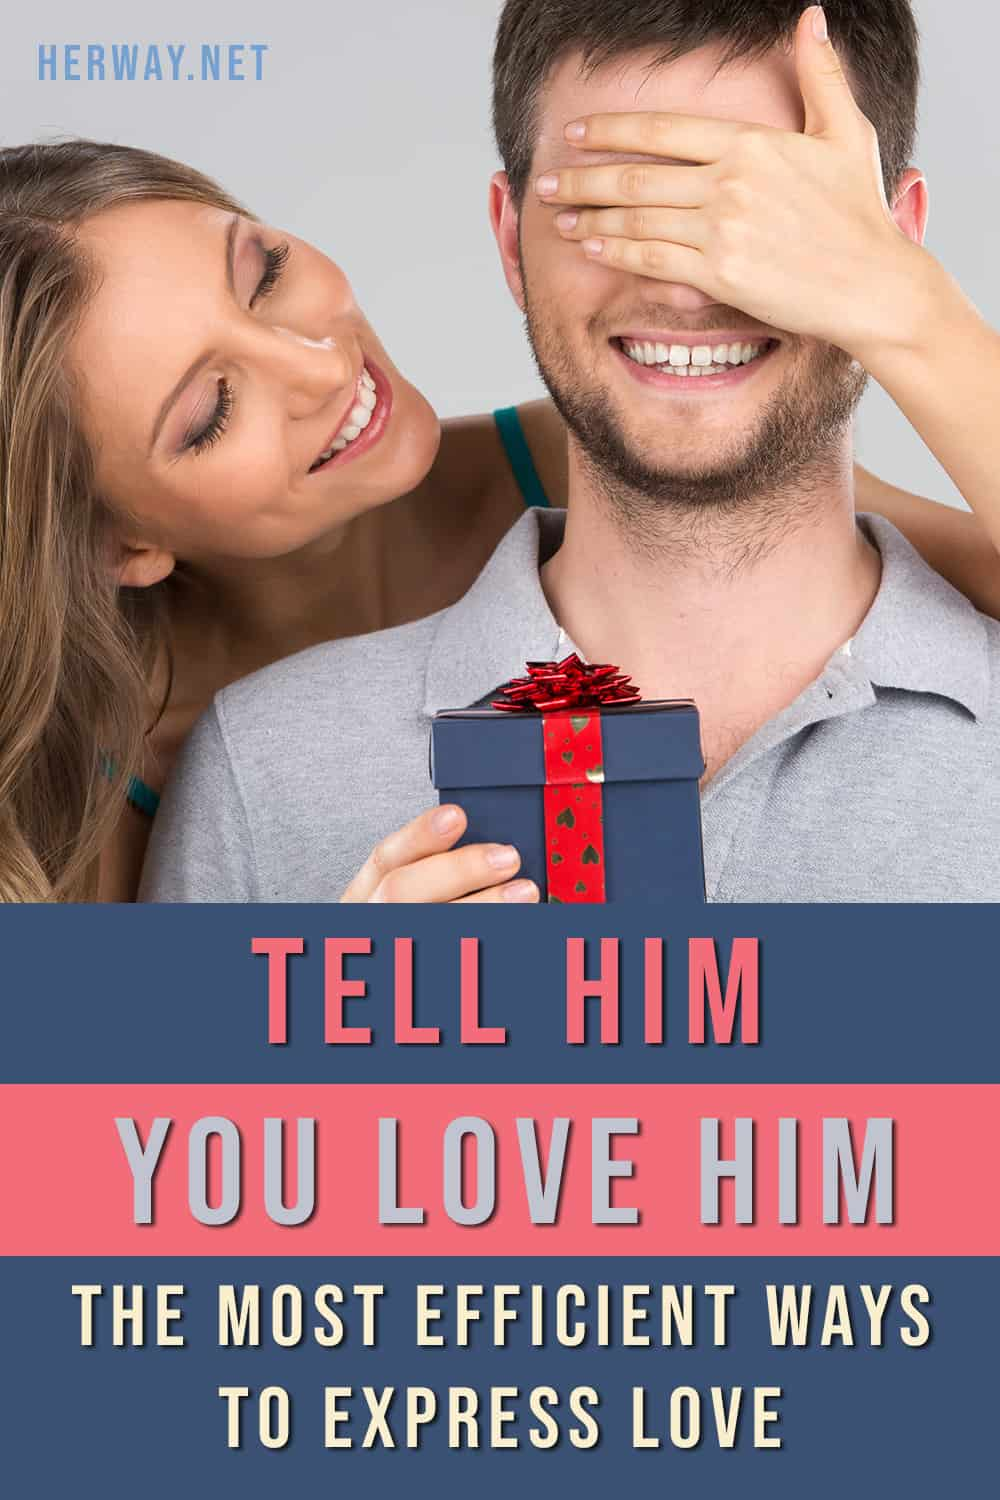 Tell Him You Love Him The Most Efficient Ways To Express Love